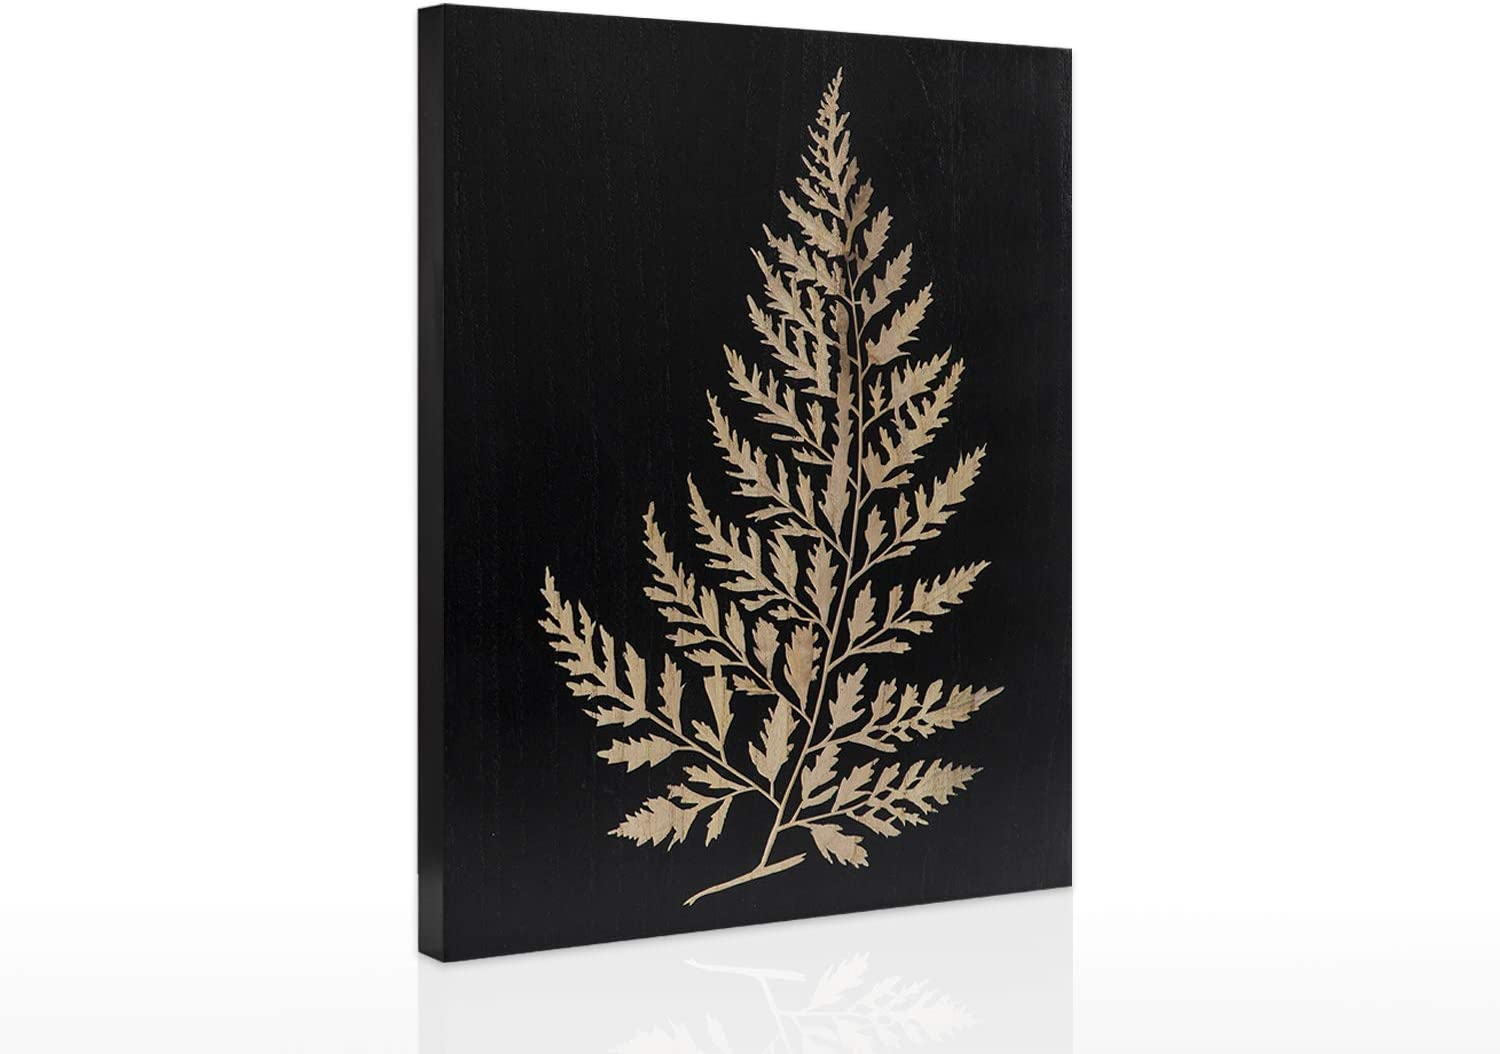 Hand Carved Wood Wall Art Decor Wall Painting Fern Series Artwork for Living Room Office 15.8 x 11.8 x 1.6 Inch